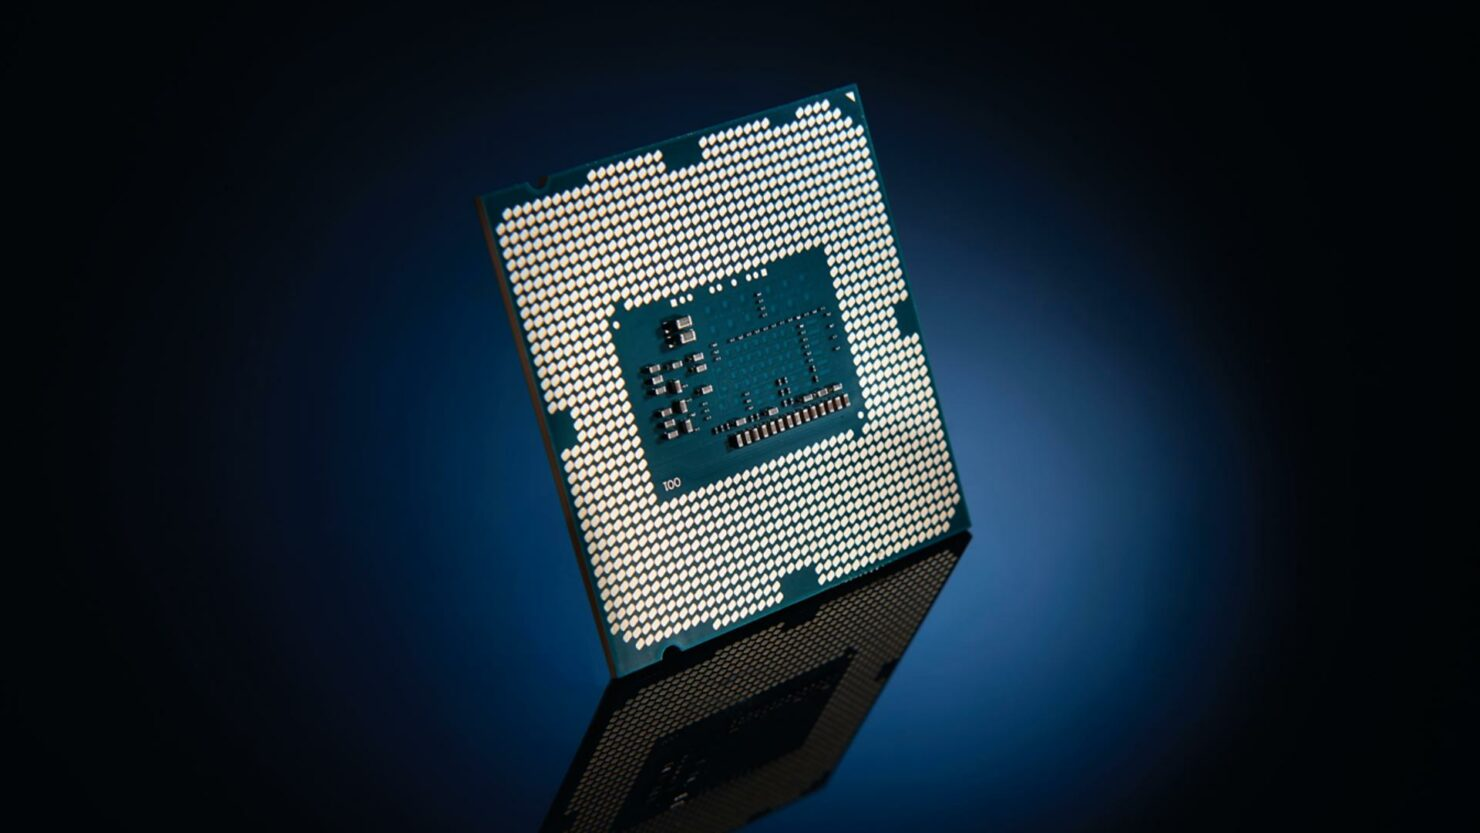 intel-rocket-lake-desktop-cpu-with-8-cores,-16-threads-benchmarked,-up-to-4.30-ghz-clocks-&-32-eu-xe-graphics